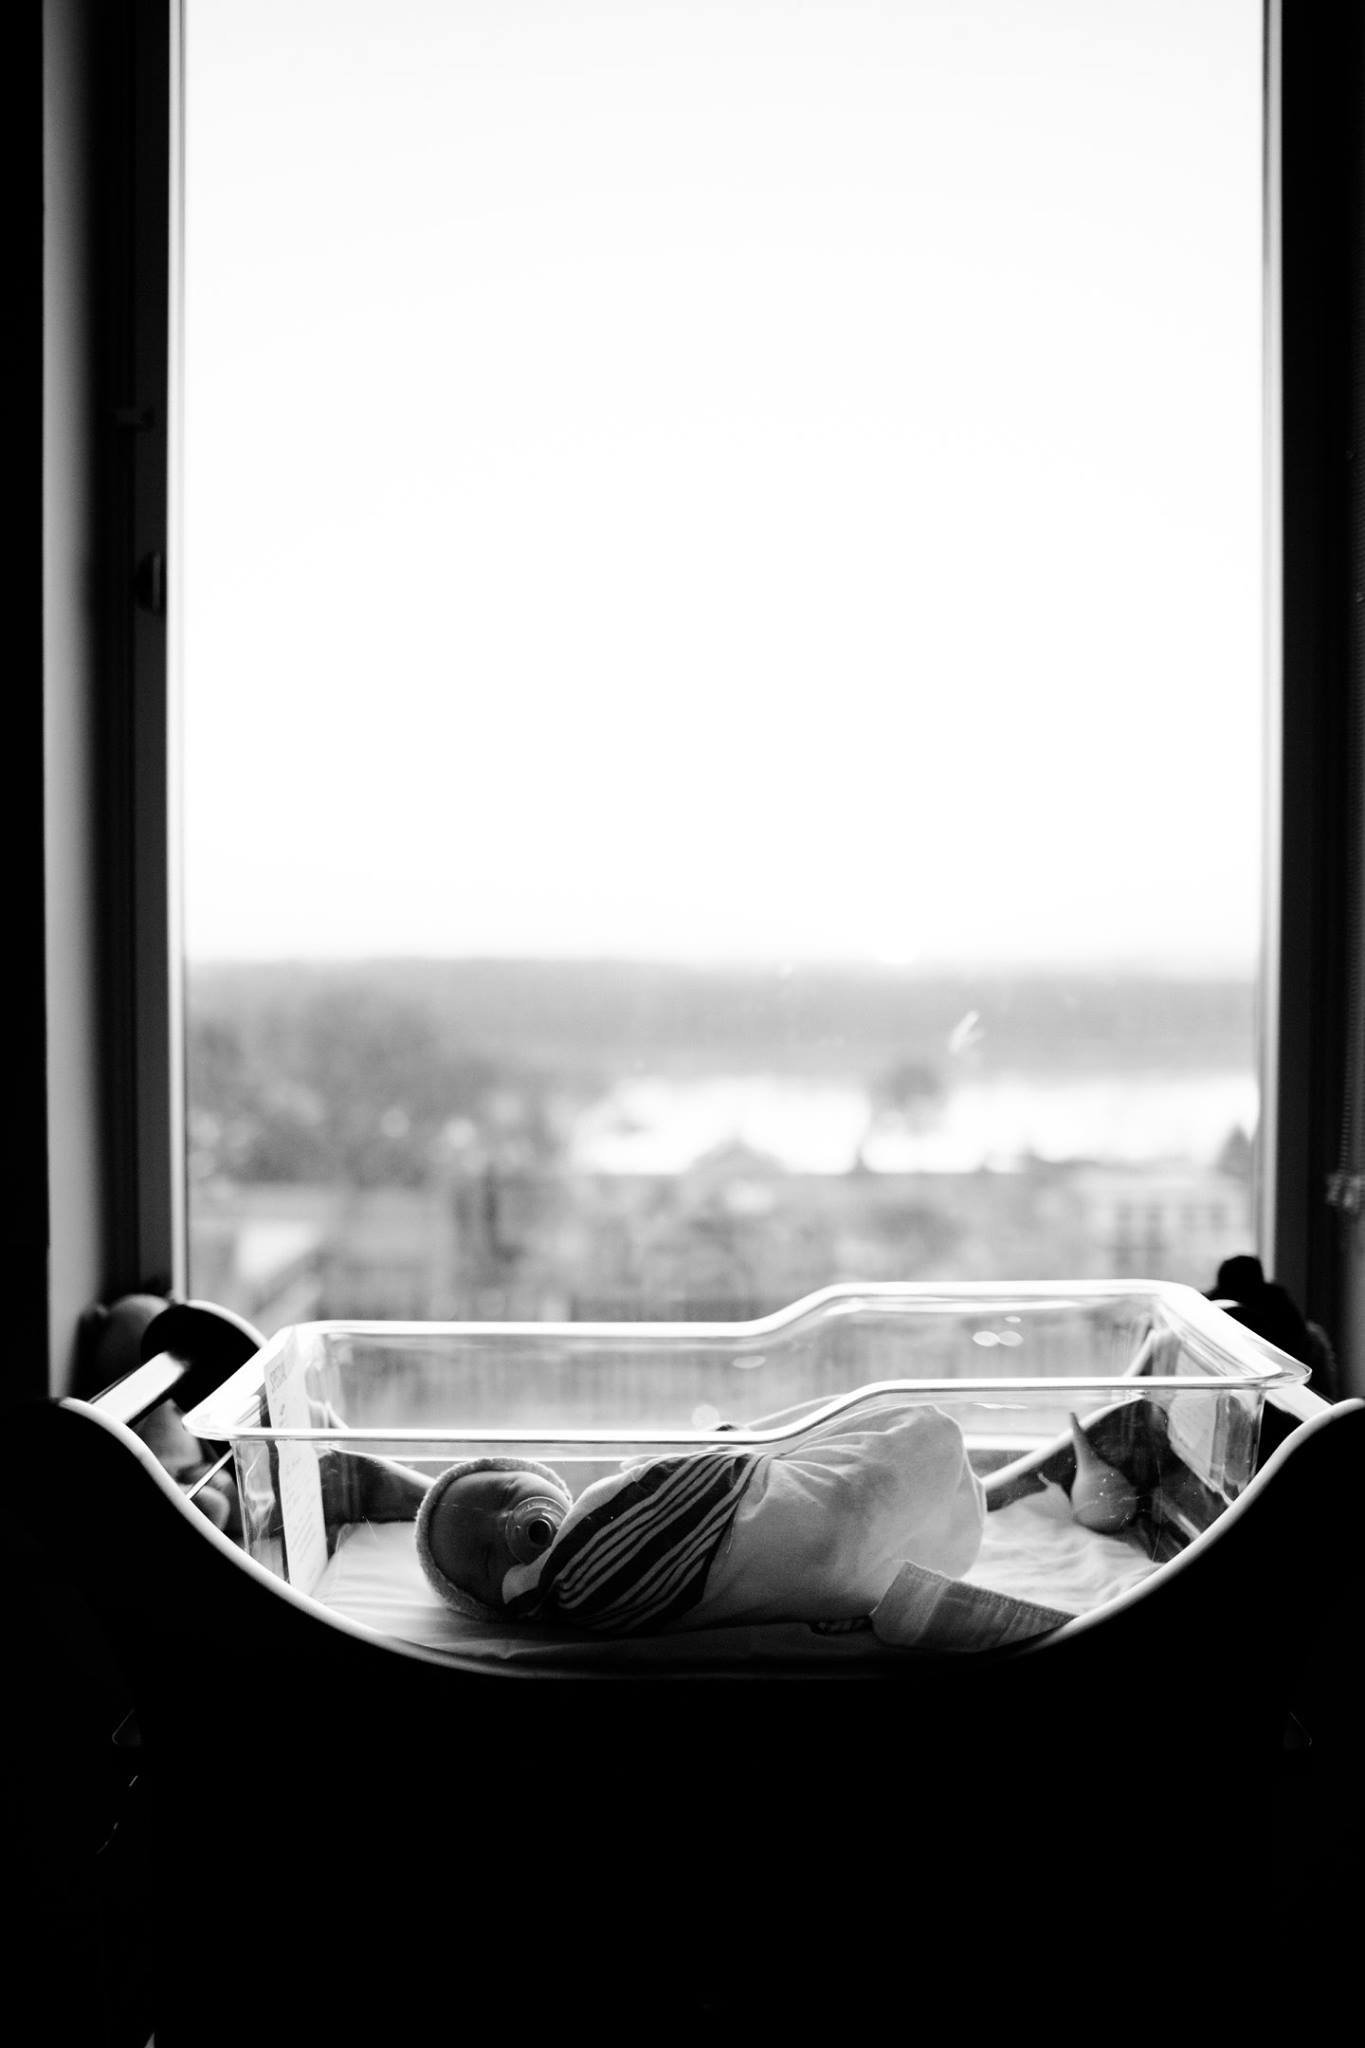 newborn laying in hospital crib next to window overlooking the streets of main street st charles missouri